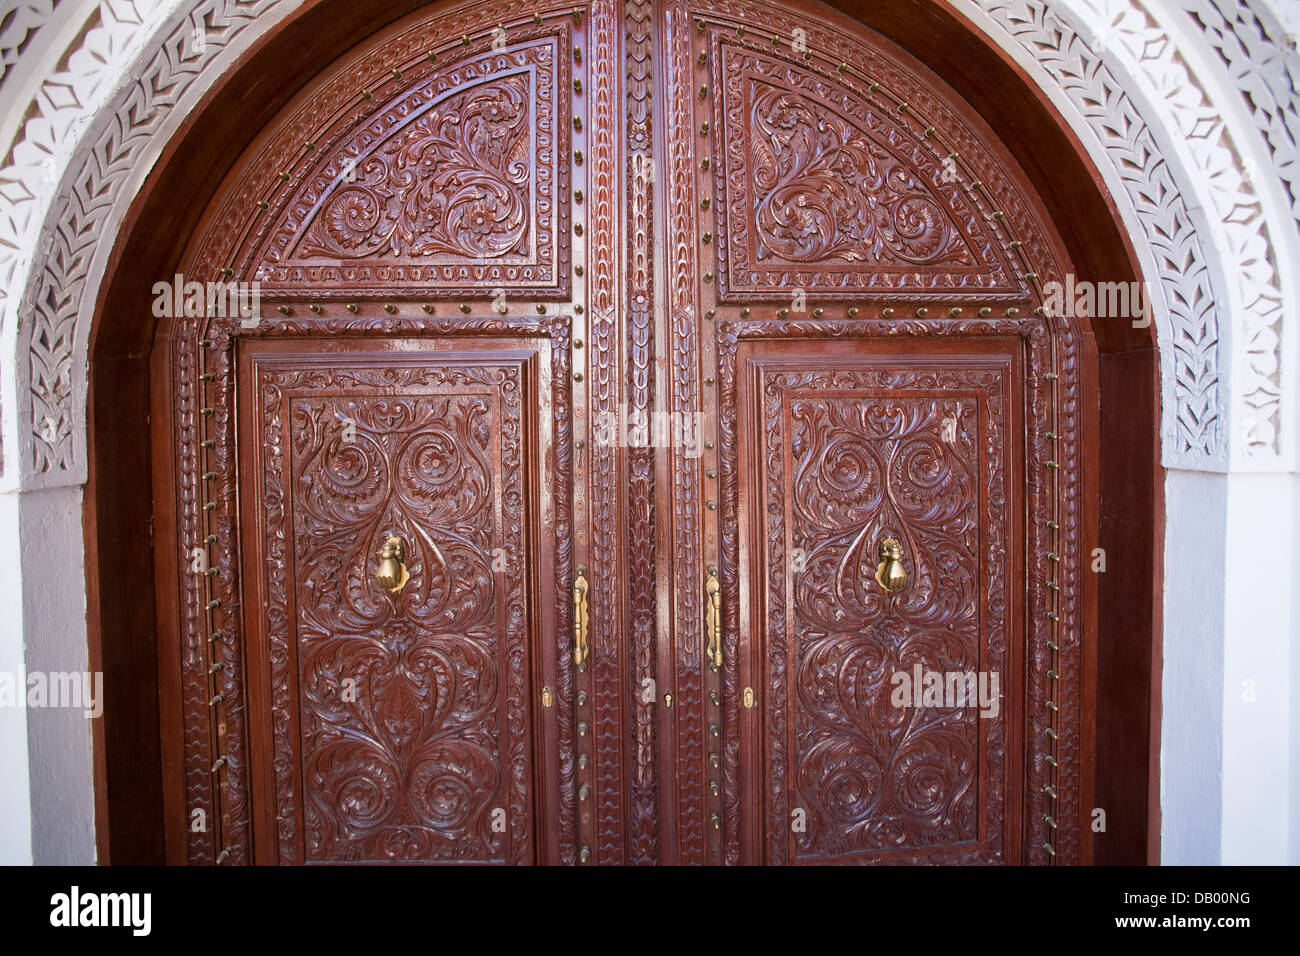 Ornately carved wooden doors Al-Tayibat City Museum for International Civilisation in Jeddah Saudi Arabia. & Ornately carved wooden doors Al-Tayibat City Museum for Stock Photo ...